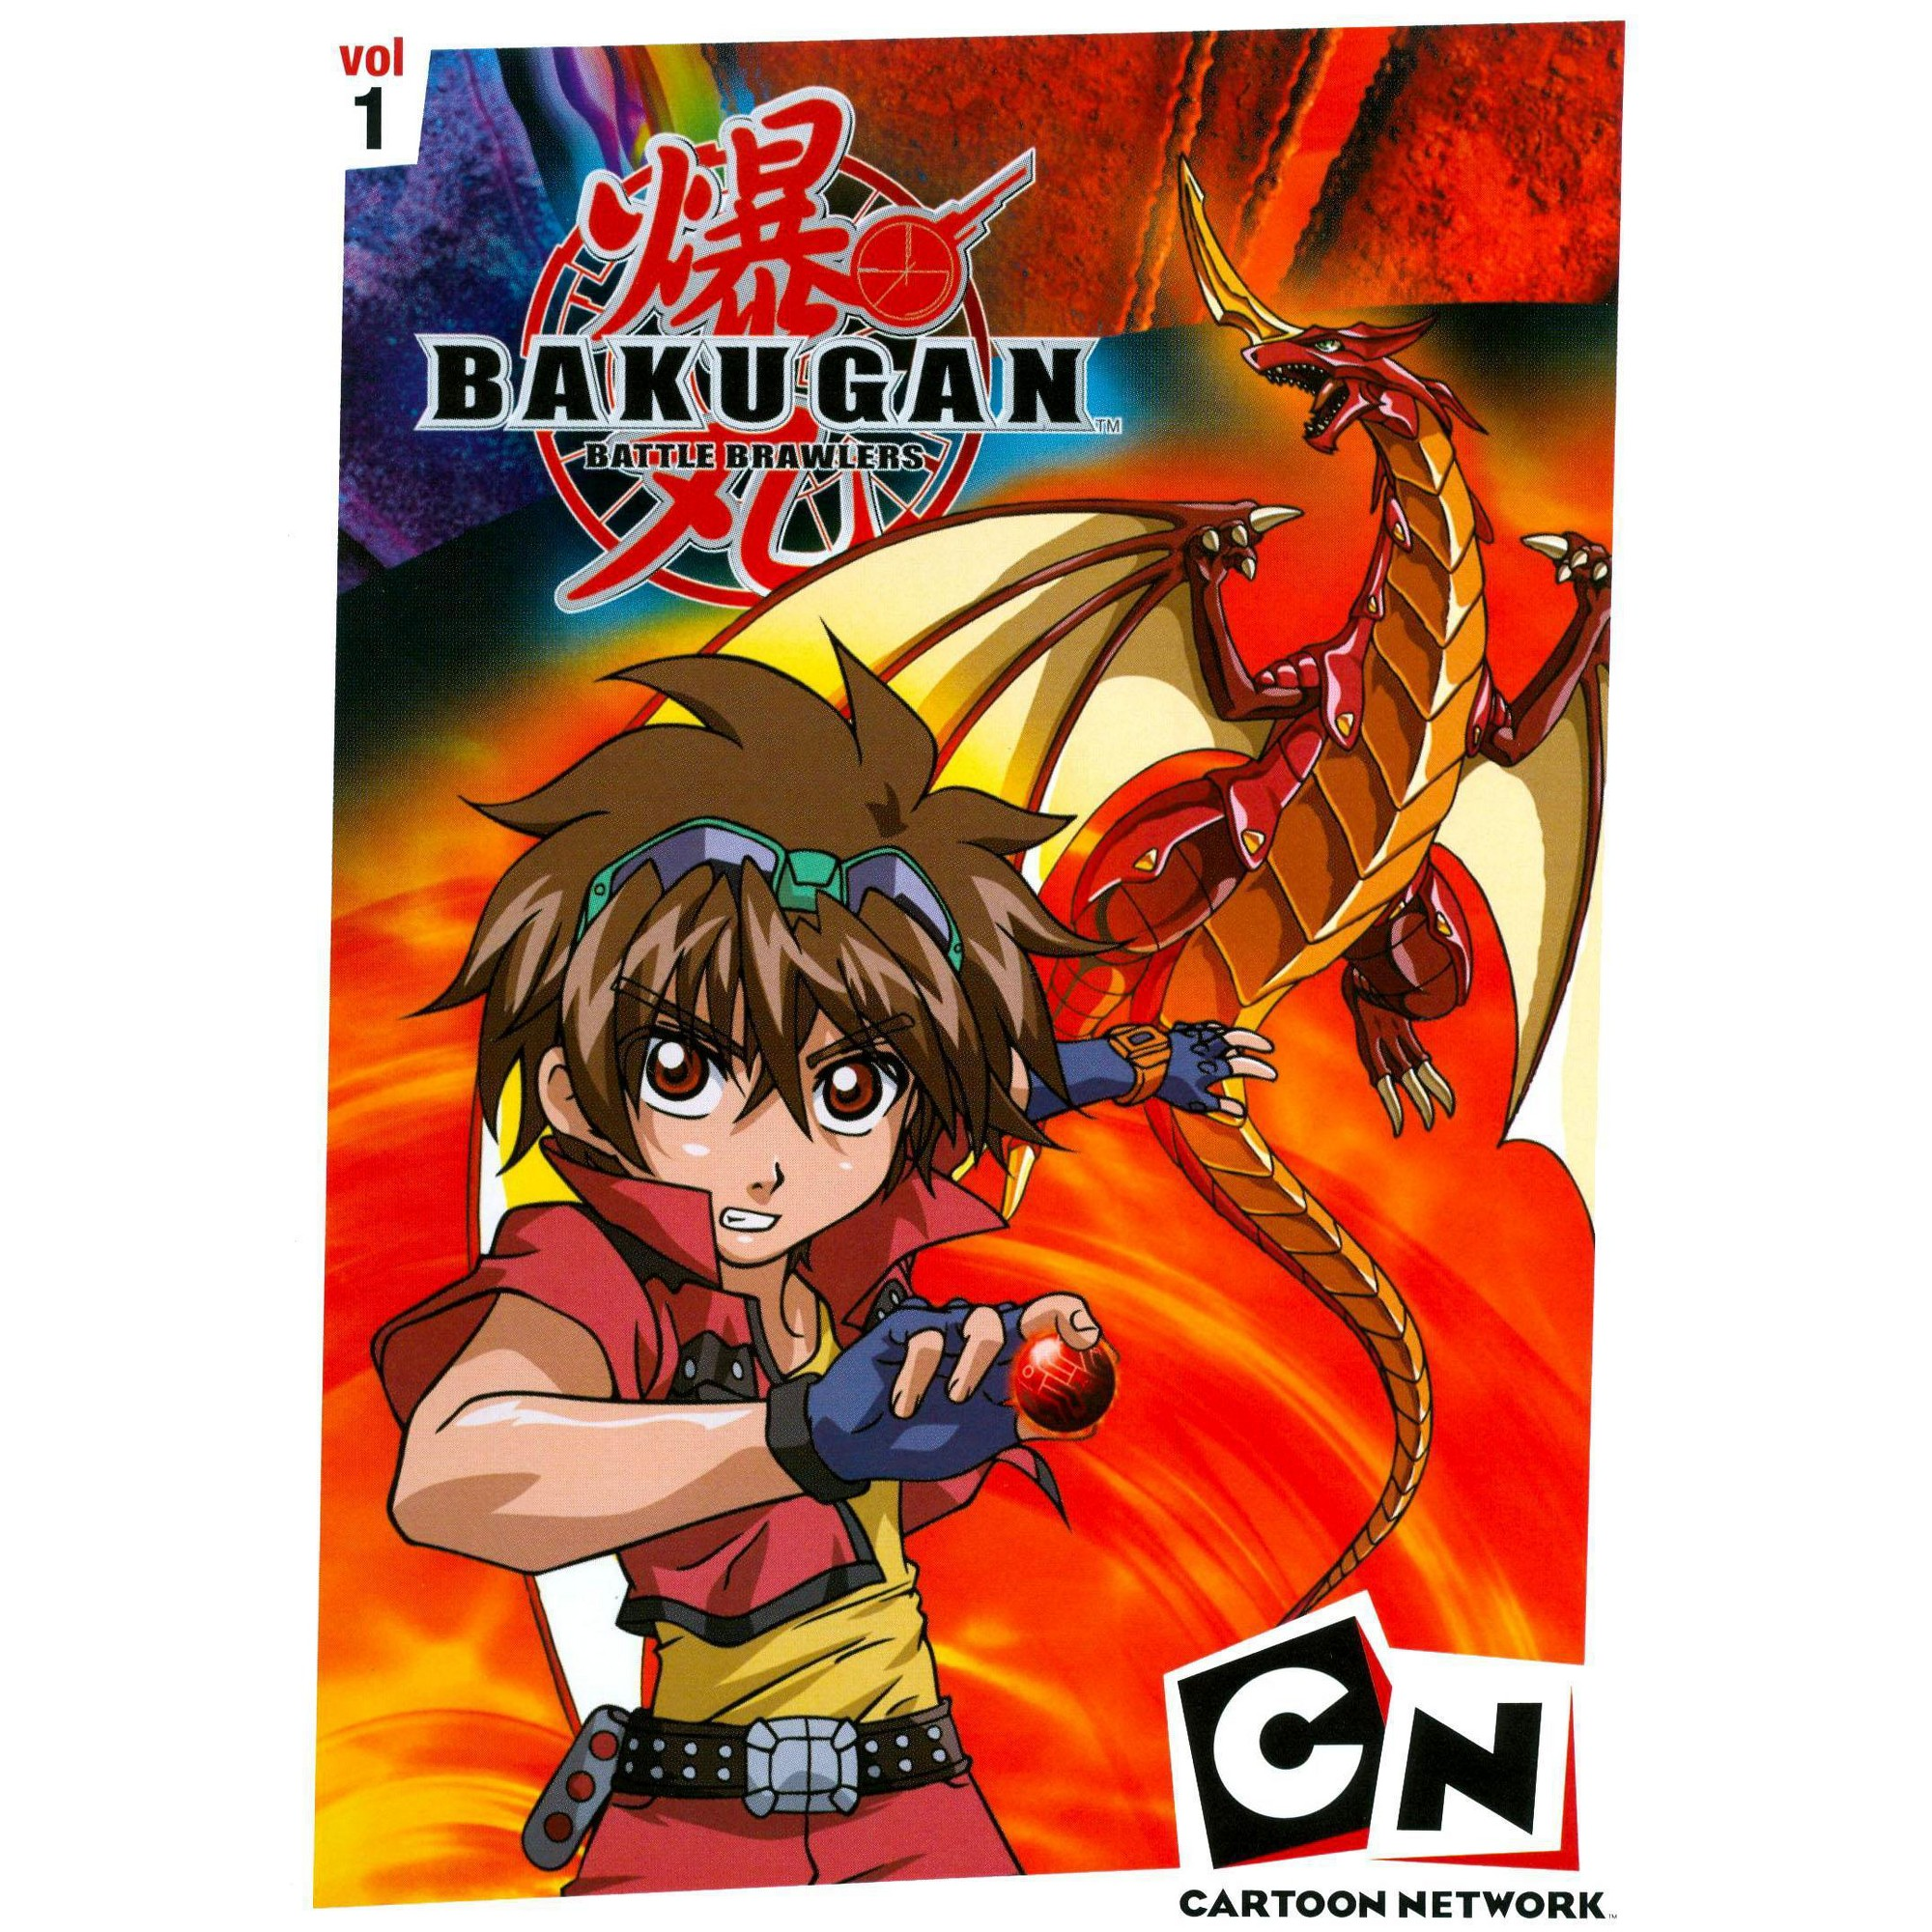 Bakugan Vol 1 Battle Brawlers Dvd Video Bakugan Battle